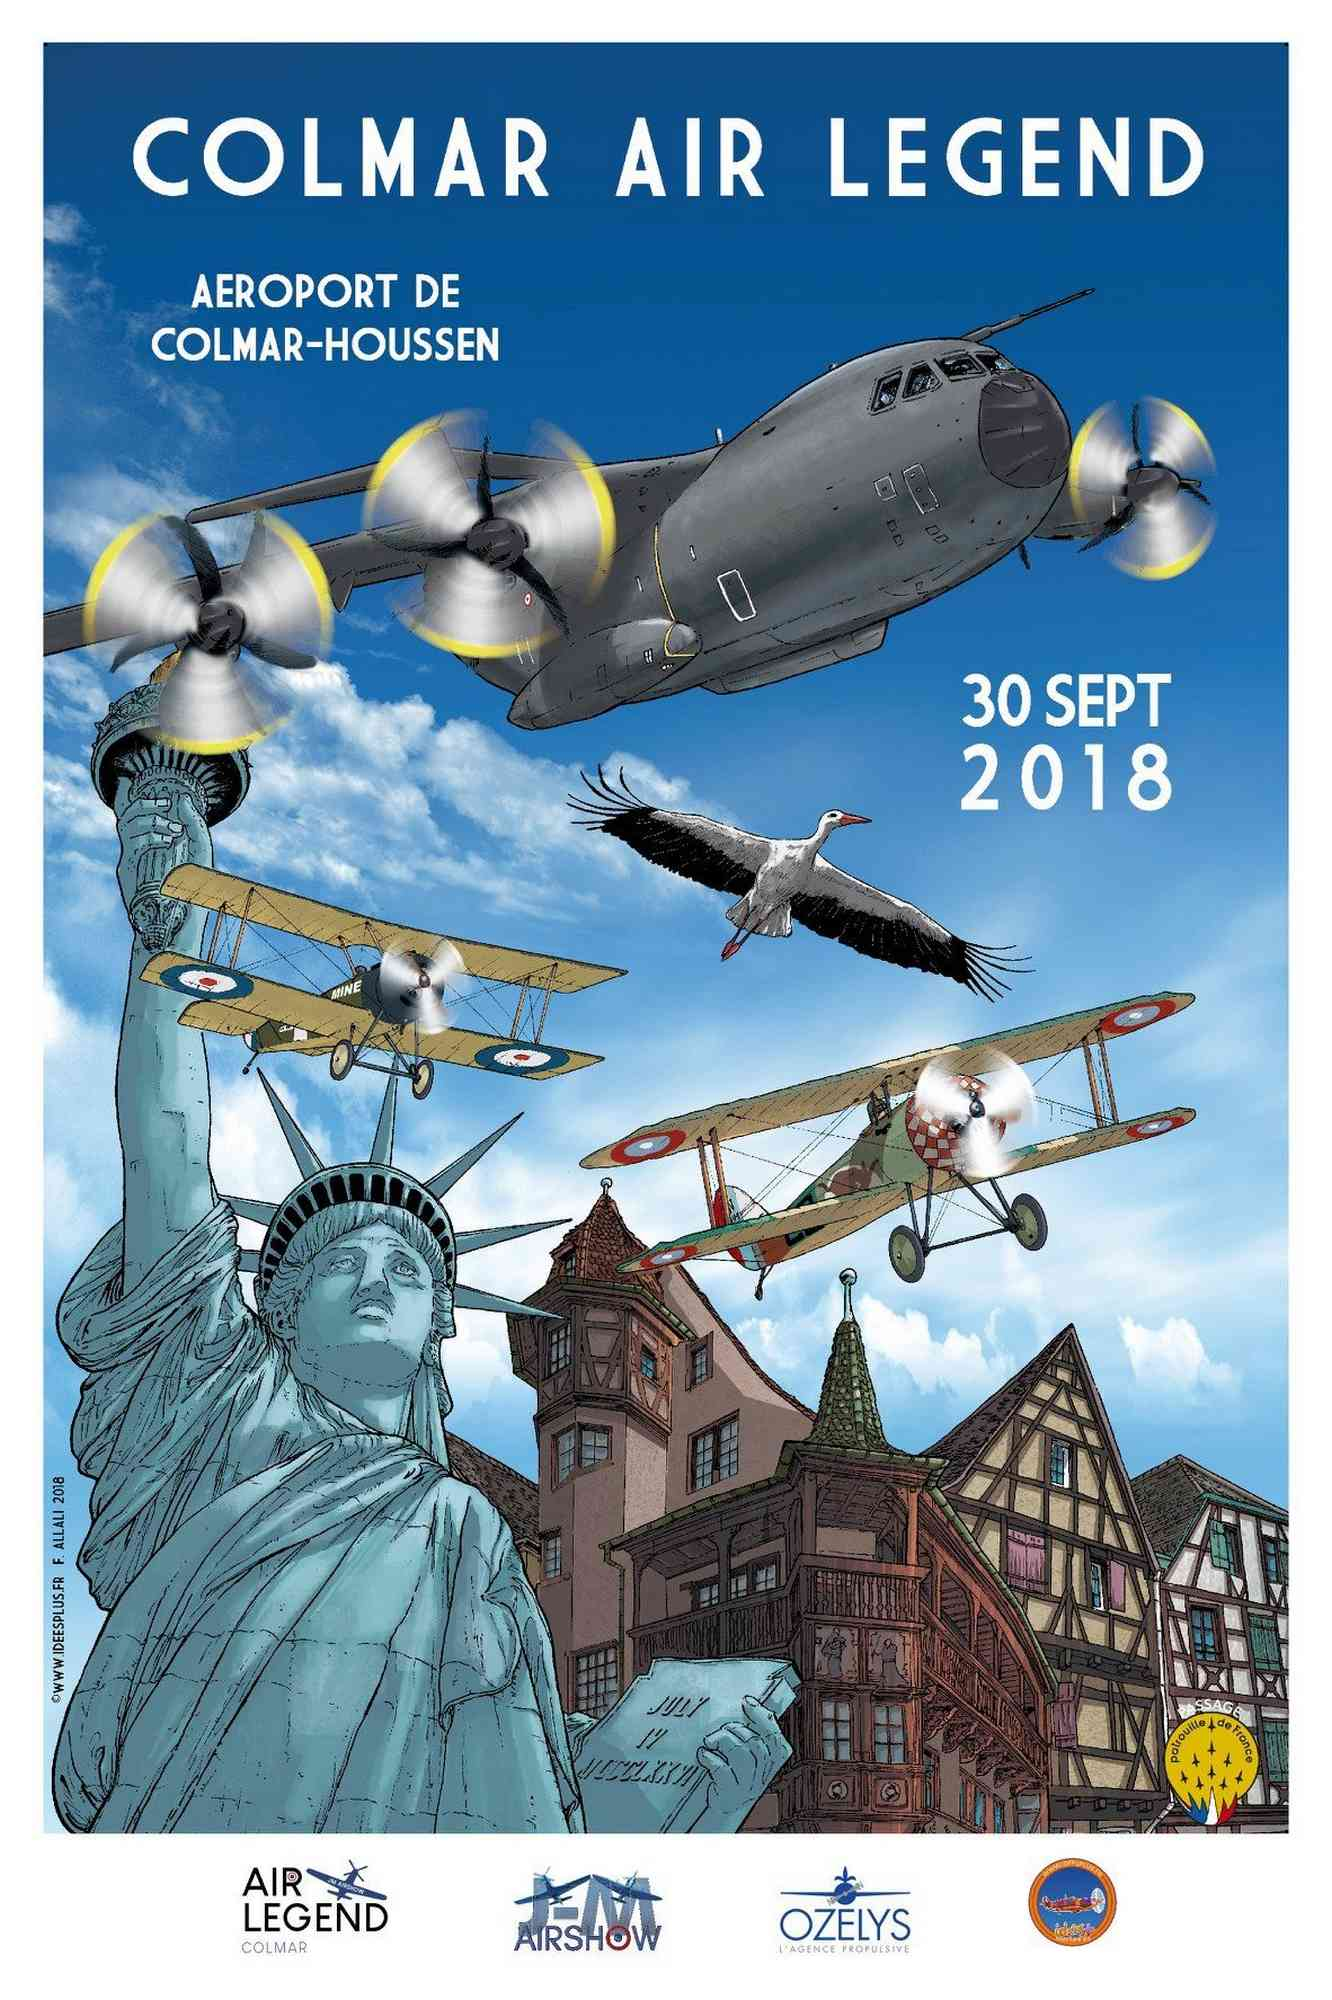 Meeting aérien Colmar Air Legend - Aéroport de Colmar-Houssen ,ozelys.aero , 29 et 30 septembre 2018 , meeting aerien 2018